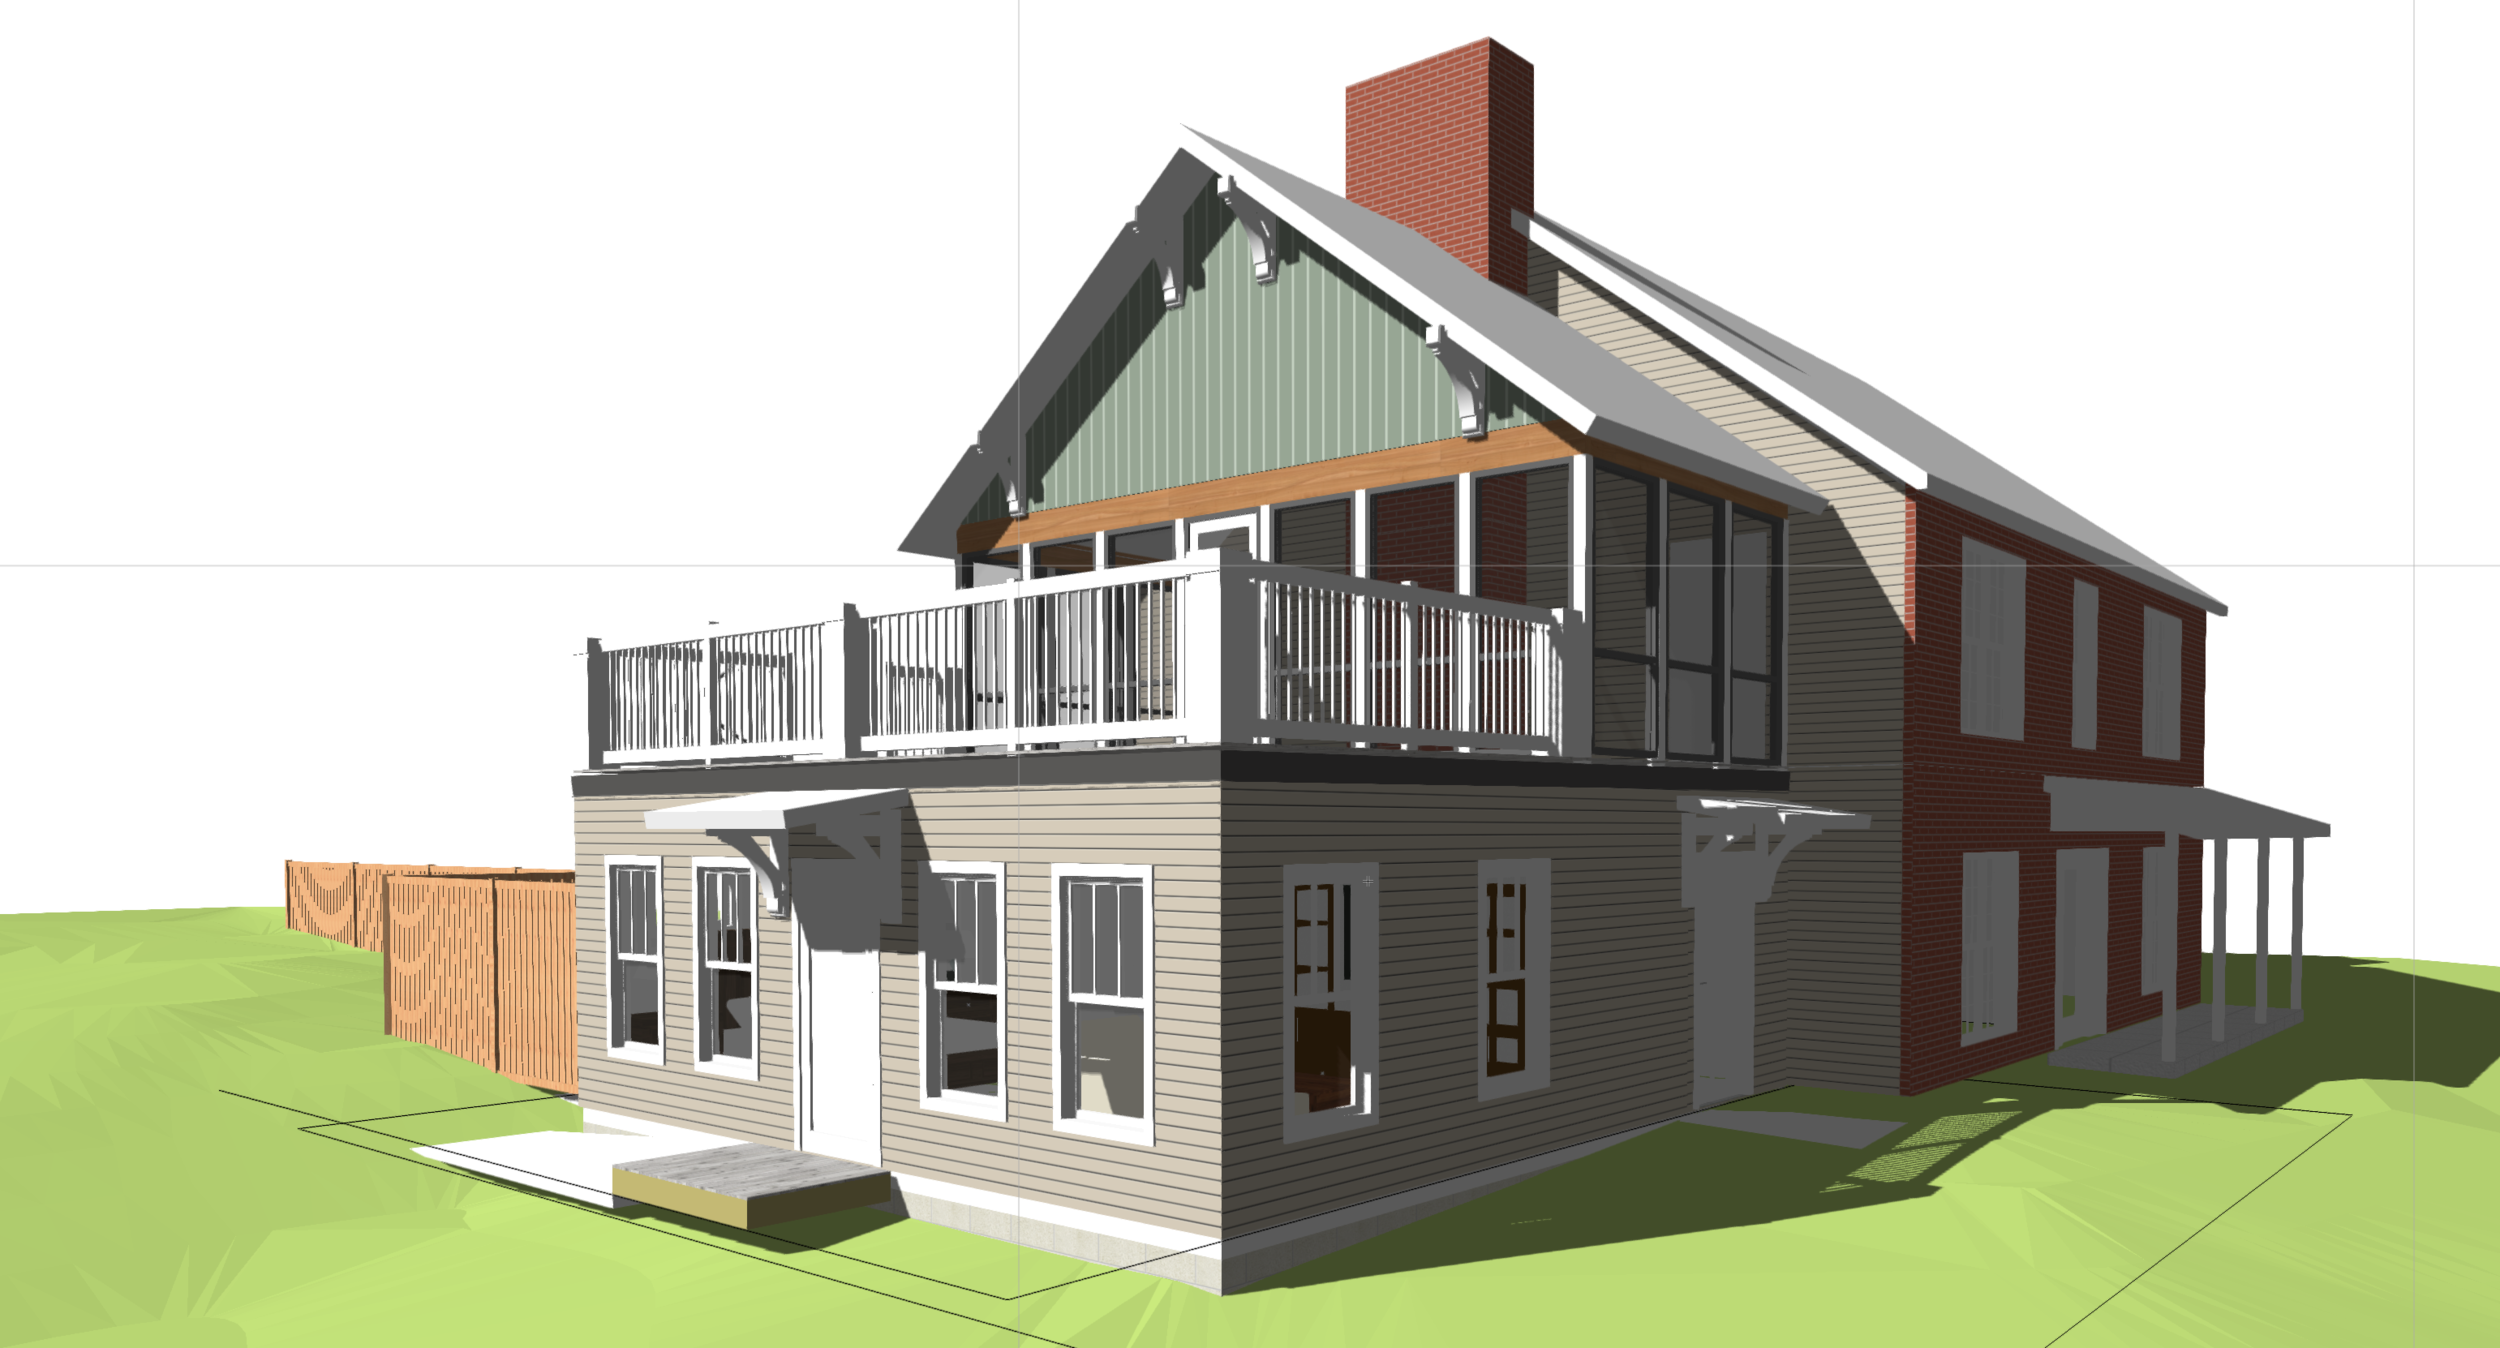 Wyatt Addition - Traditional Mother-in-law Suite addition with partially screened in roof deck. Unbuilt.